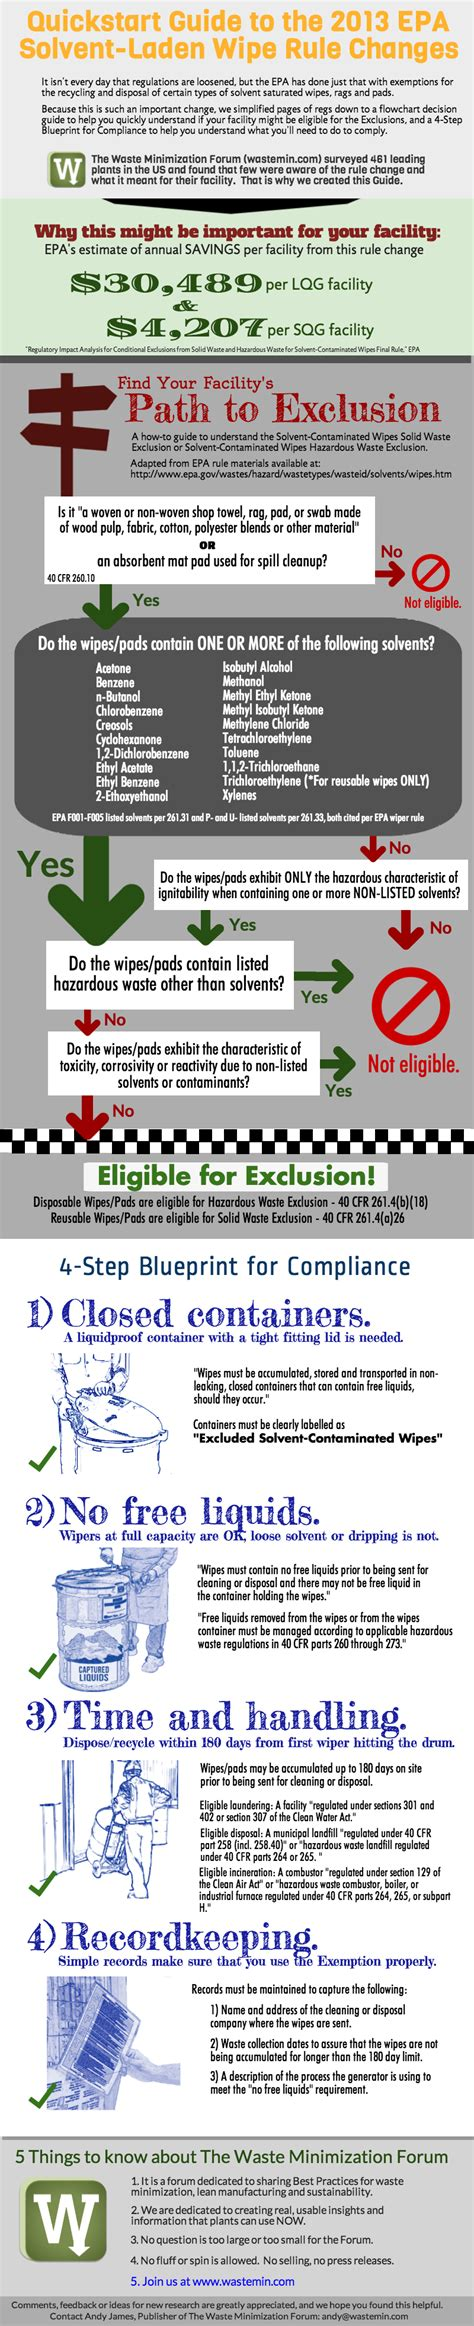 quickstart guide to the 2013 epa solvent laden wipe rule changes the waste minimization forum